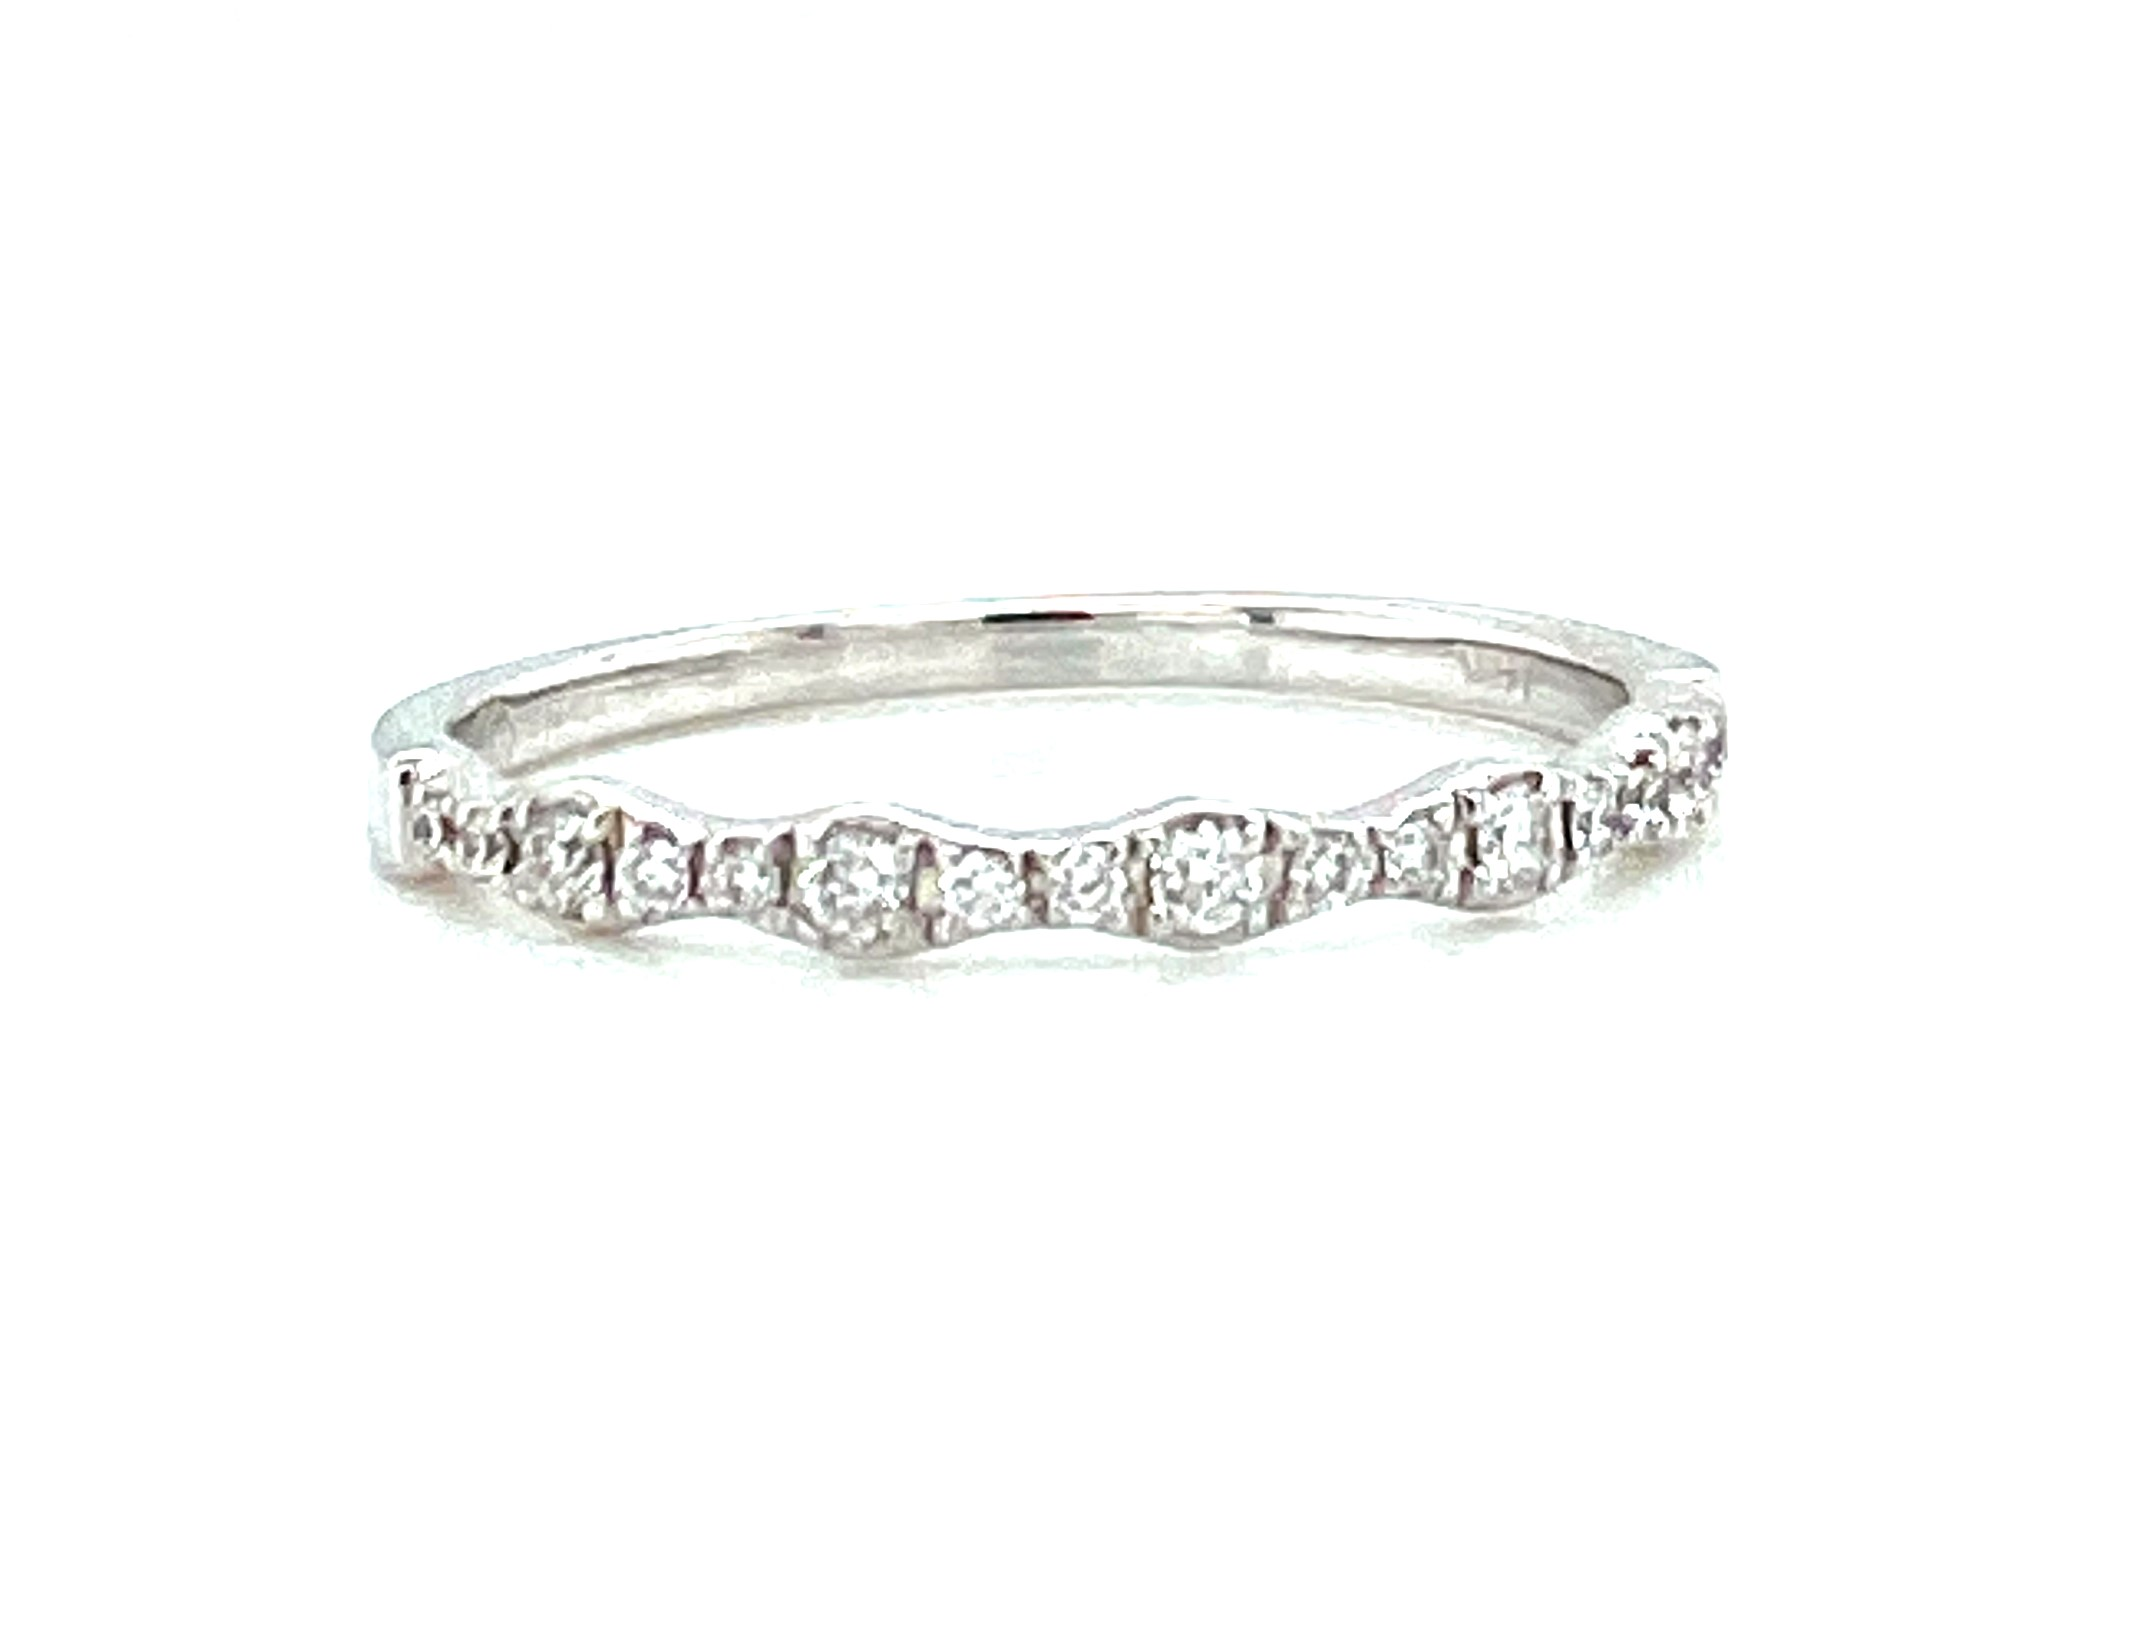 Diamond Wedding Band - Ladies 14 karat white gold high polished diamond wedding band. This band features 17 prong set round brilliant cut diamonds.  The diamonds are G-H color, VS2-SI1 clarity and weigh 0.15 ct.  The band weighs 1.20 grams and is size 6.50.